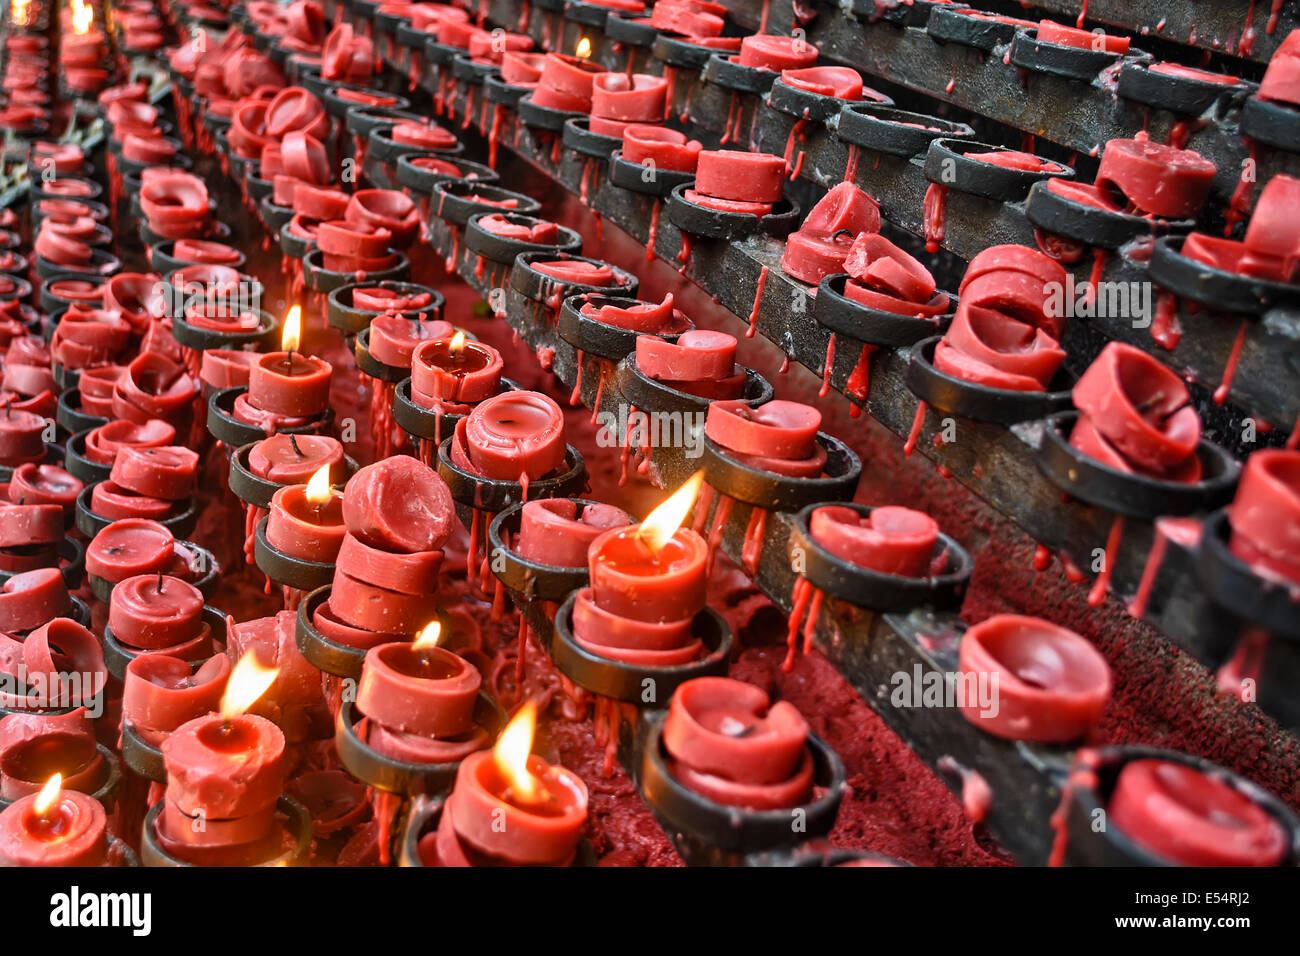 Lit and unlit red little candle offerings of people for their loved ones - Stock Image